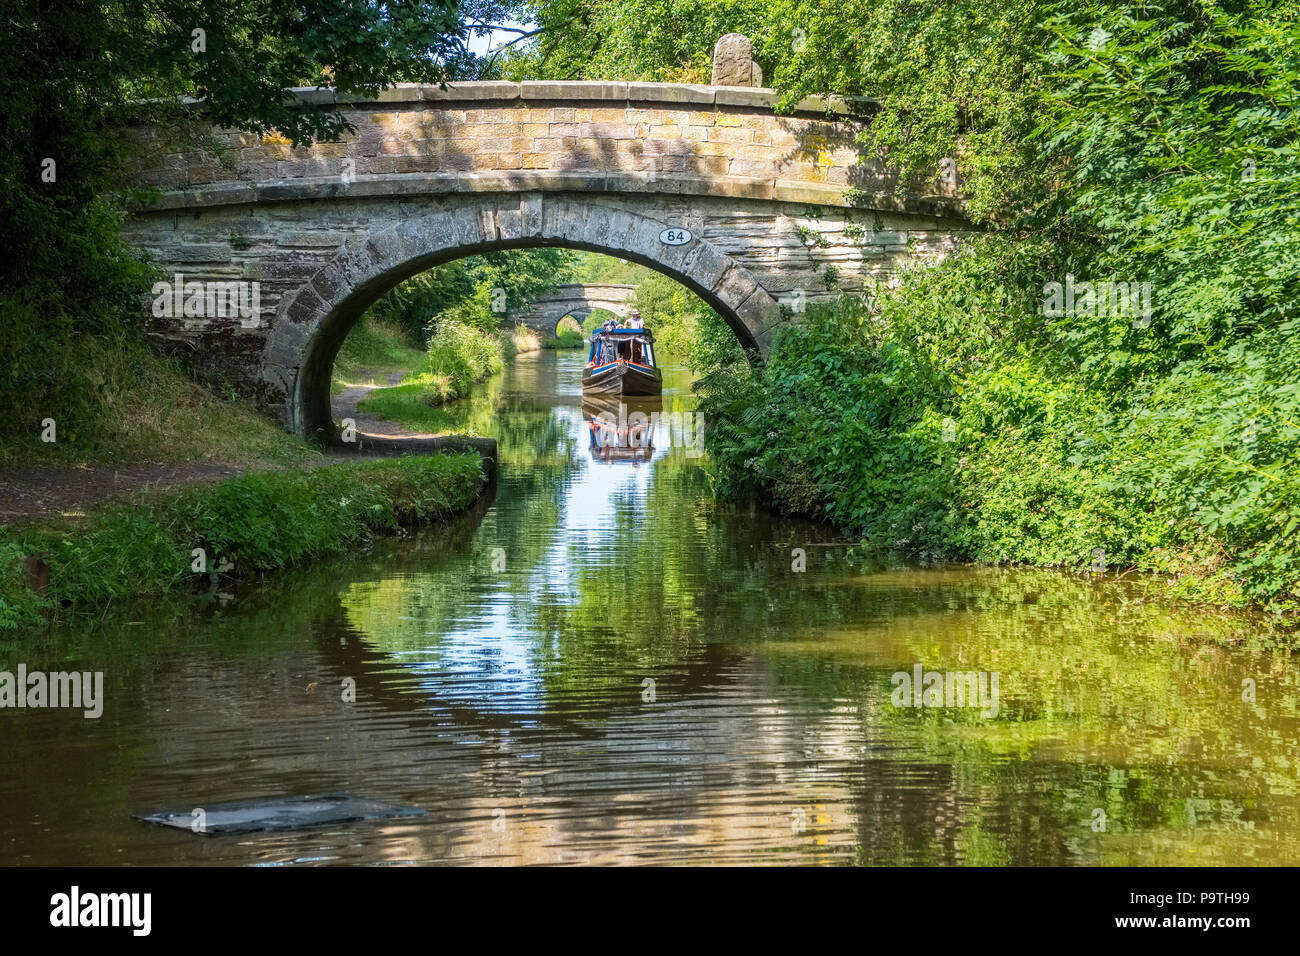 Bridges and narrowboats On the Macclesfield Canal near Congleton in Cheshire - Stock Image